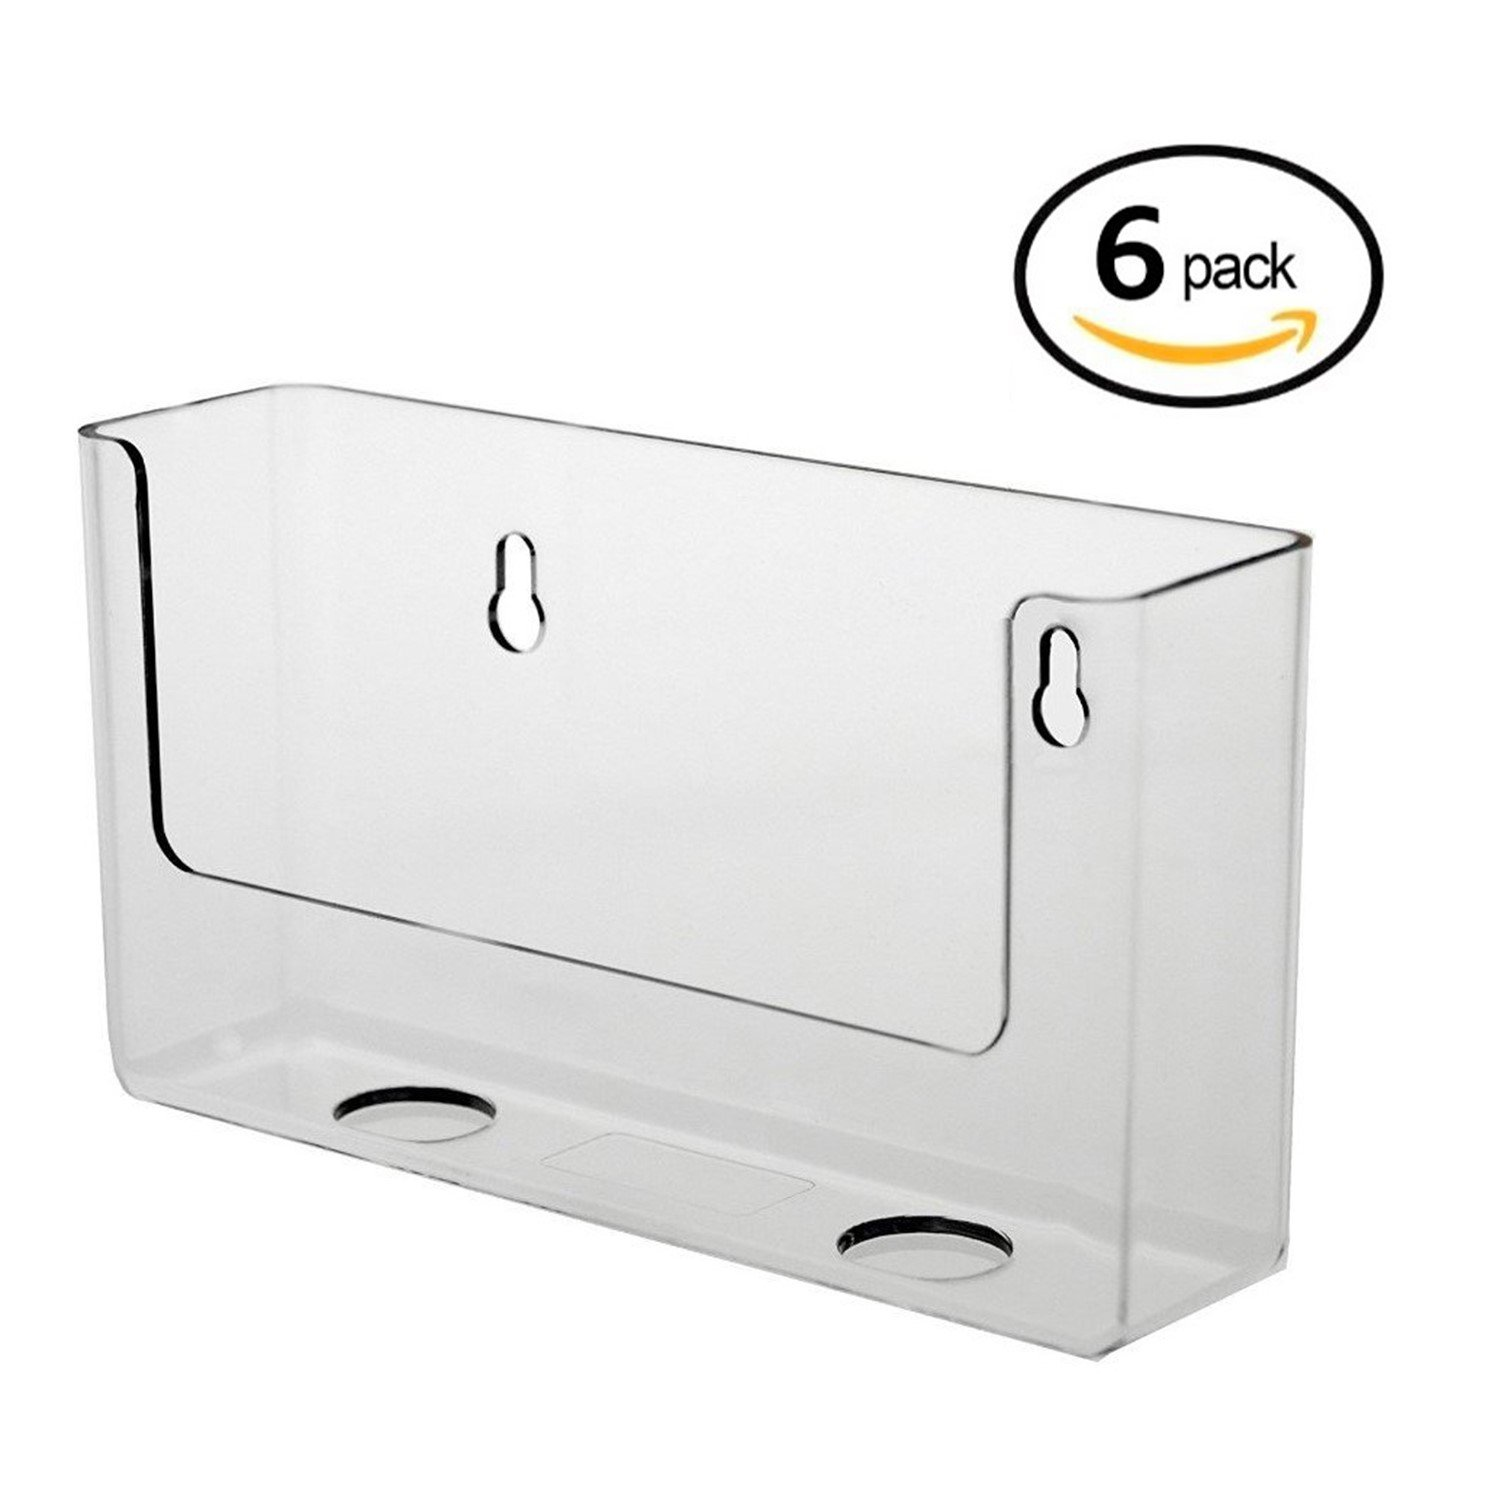 Source One 6 Pack Clear Postcard Holders Displays 6-Inch Wide (S1-postcard-6pb)